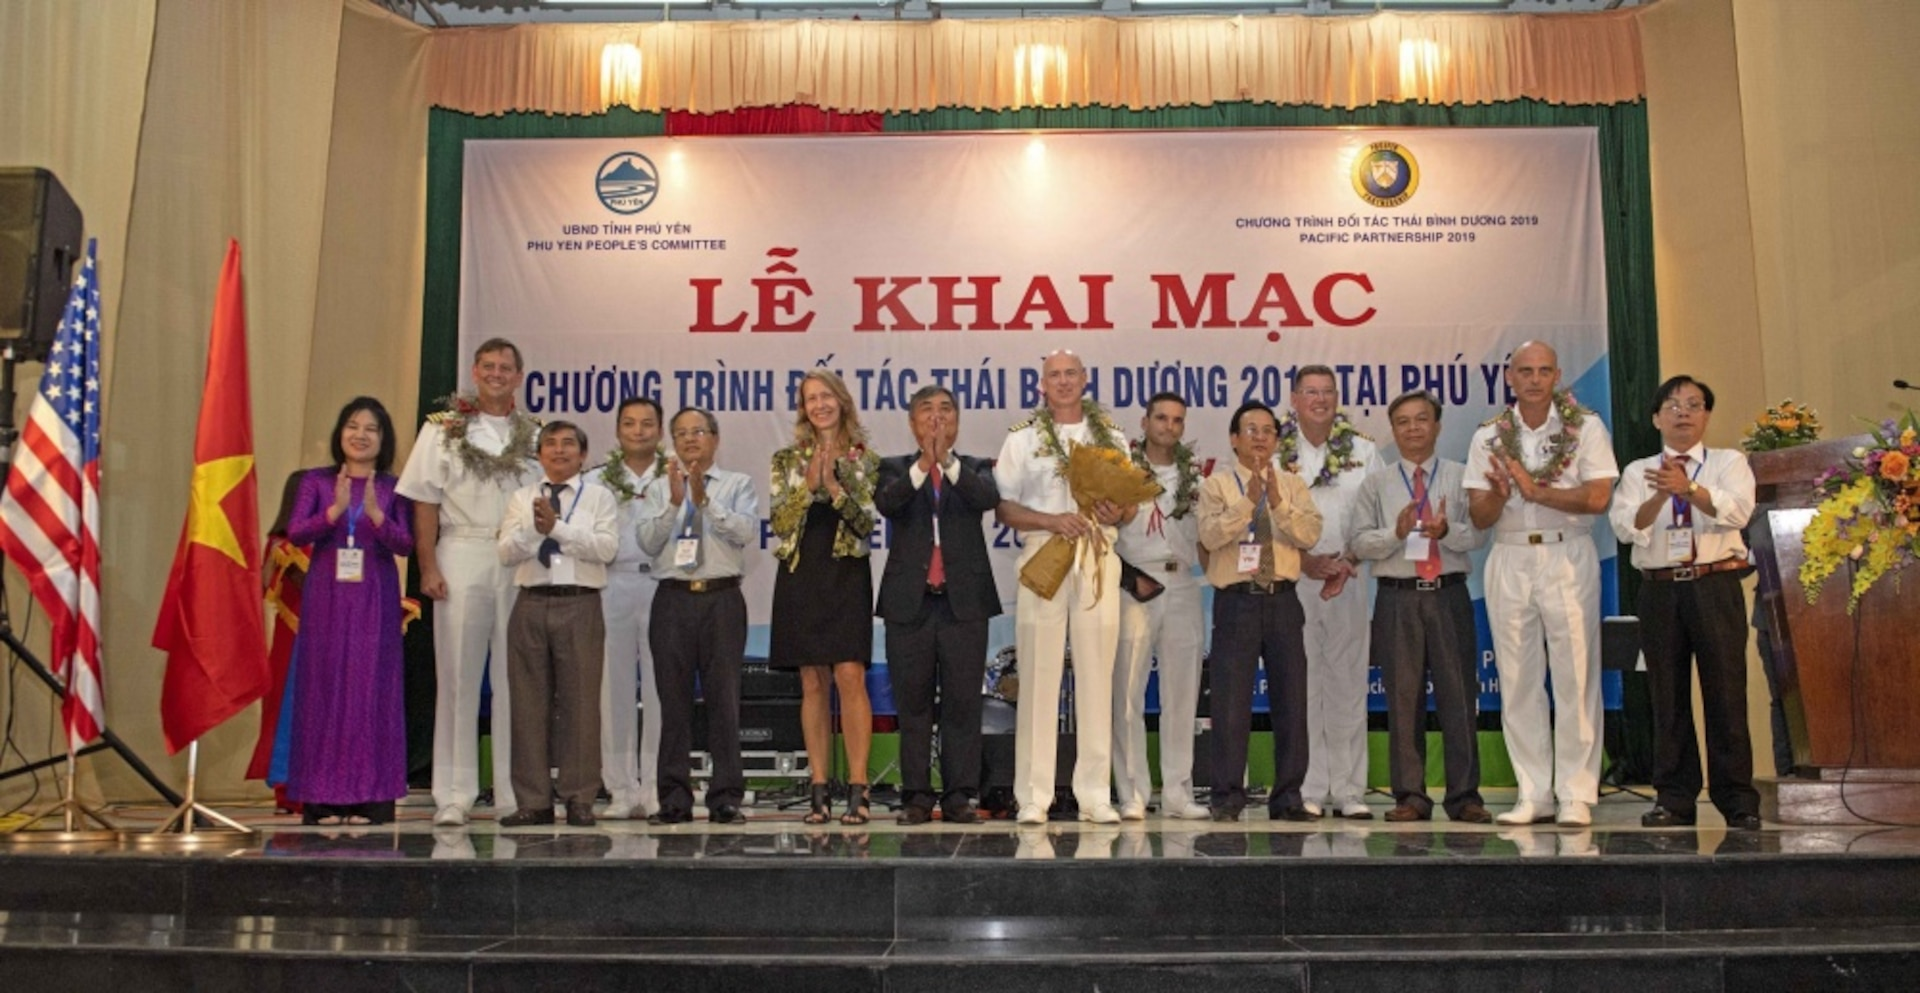 190506-N-NB178-1070 TUY HOA, Vietnam (May 6, 2019) Representatives from the local government of the Phu Yen Province pose for a group photo with Pacific Partnership 2019 leadership during the opening ceremony at the Hall of the Provincial Labor Union during Pacific Partnership 2019. Pacific Partnership, now in its 14th iteration, is the largest annual multinational humanitarian assistance and disaster relief preparedness mission conducted in the Indo-Pacific. Each year, the mission team works collectively with host and partner nations to enhance regional interoperability and disaster response capabilities, increase stability and security in the region, and foster new and enduring friendships in the Indo-Pacific. (U.S. Navy photo by Mass Communication Specialist 1st Class Tyrell K. Morris)